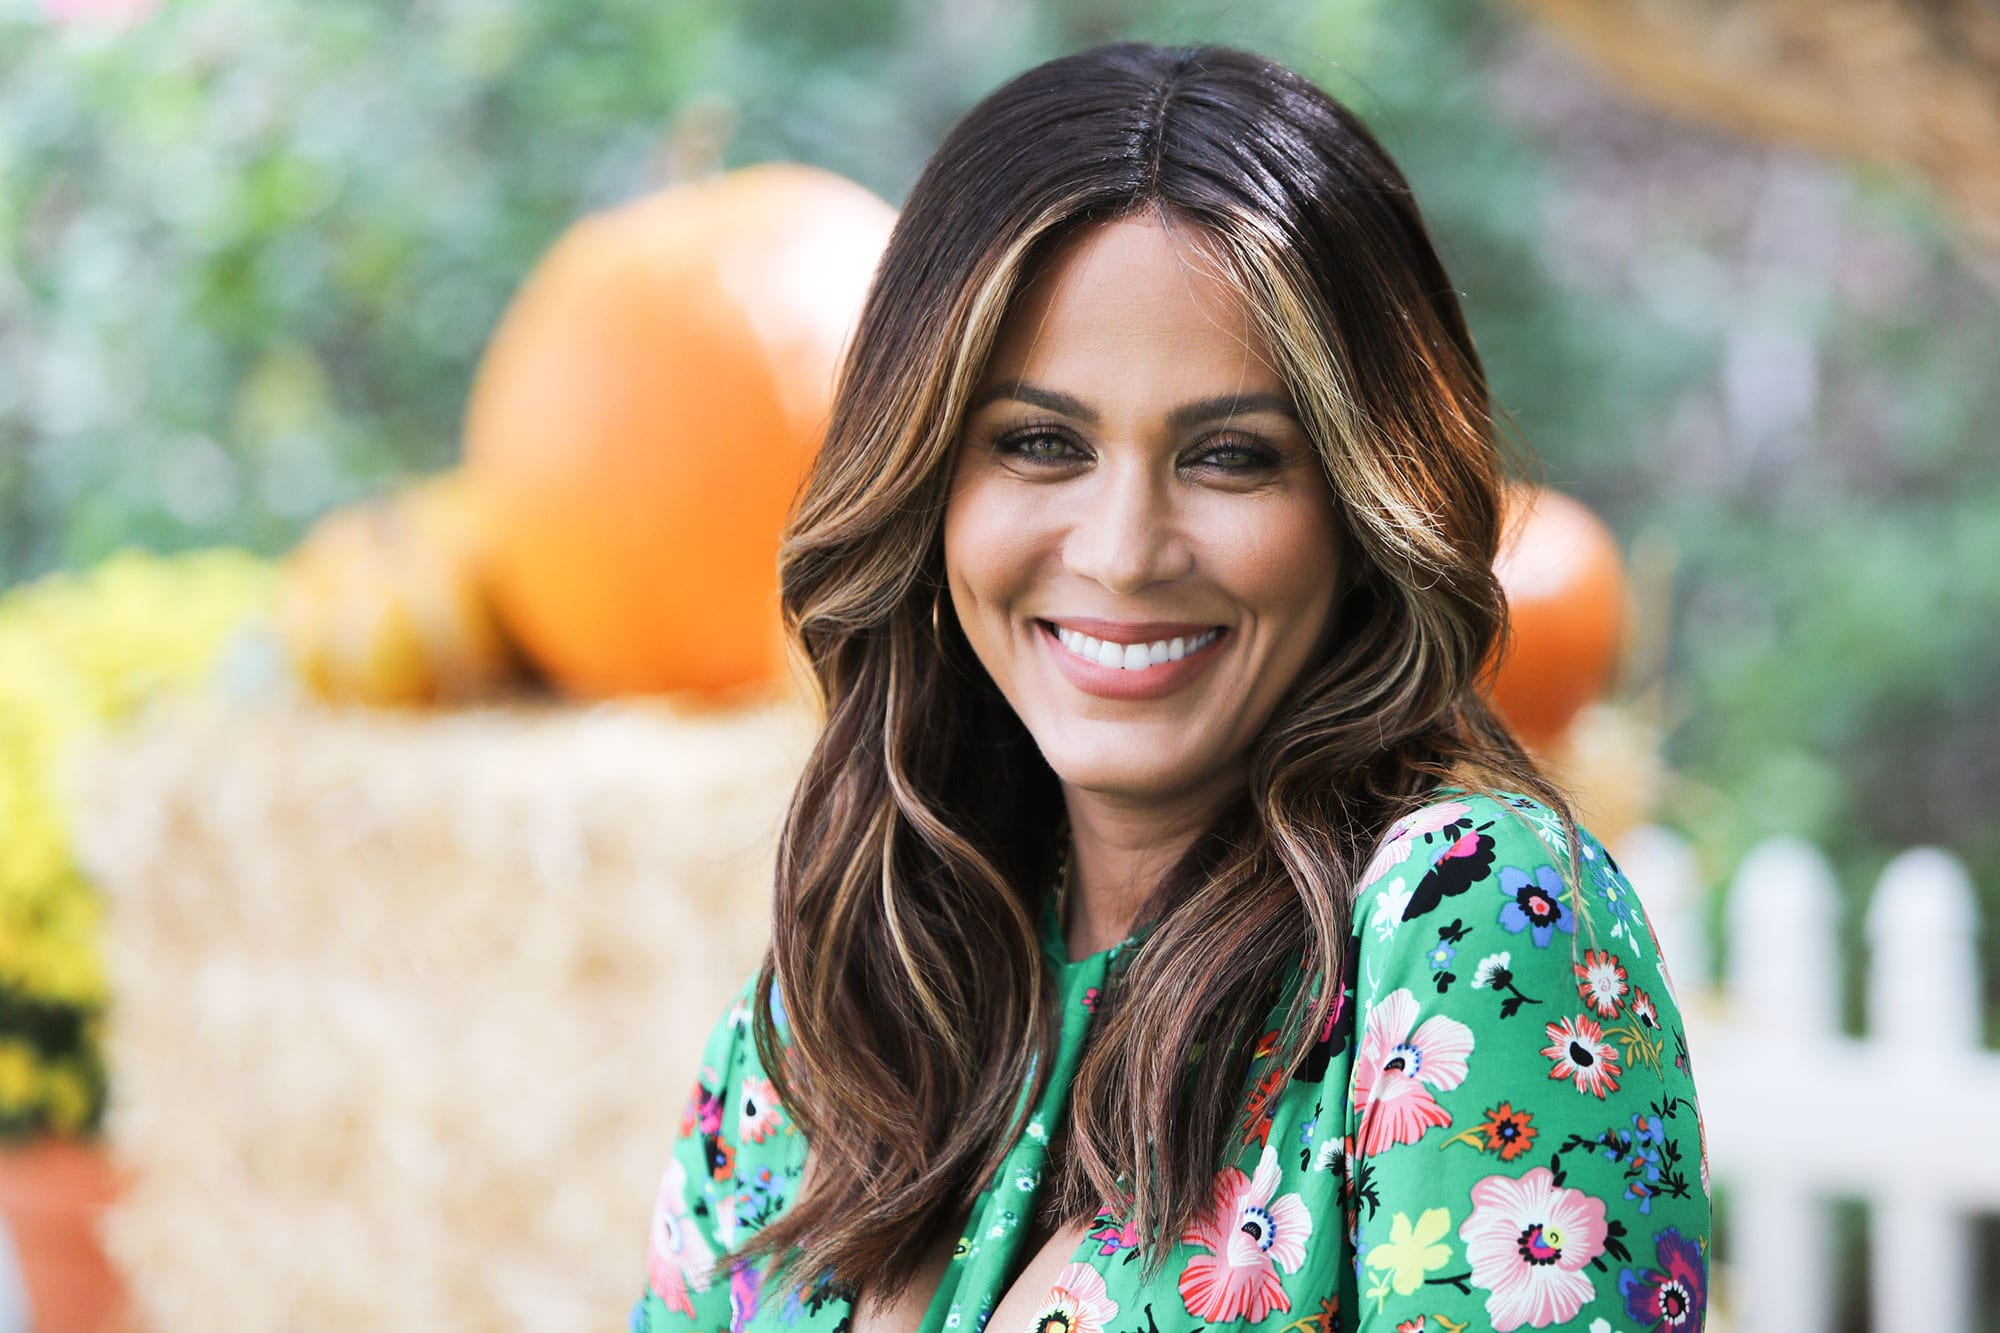 Nicole Ari Parker American Actress and Model